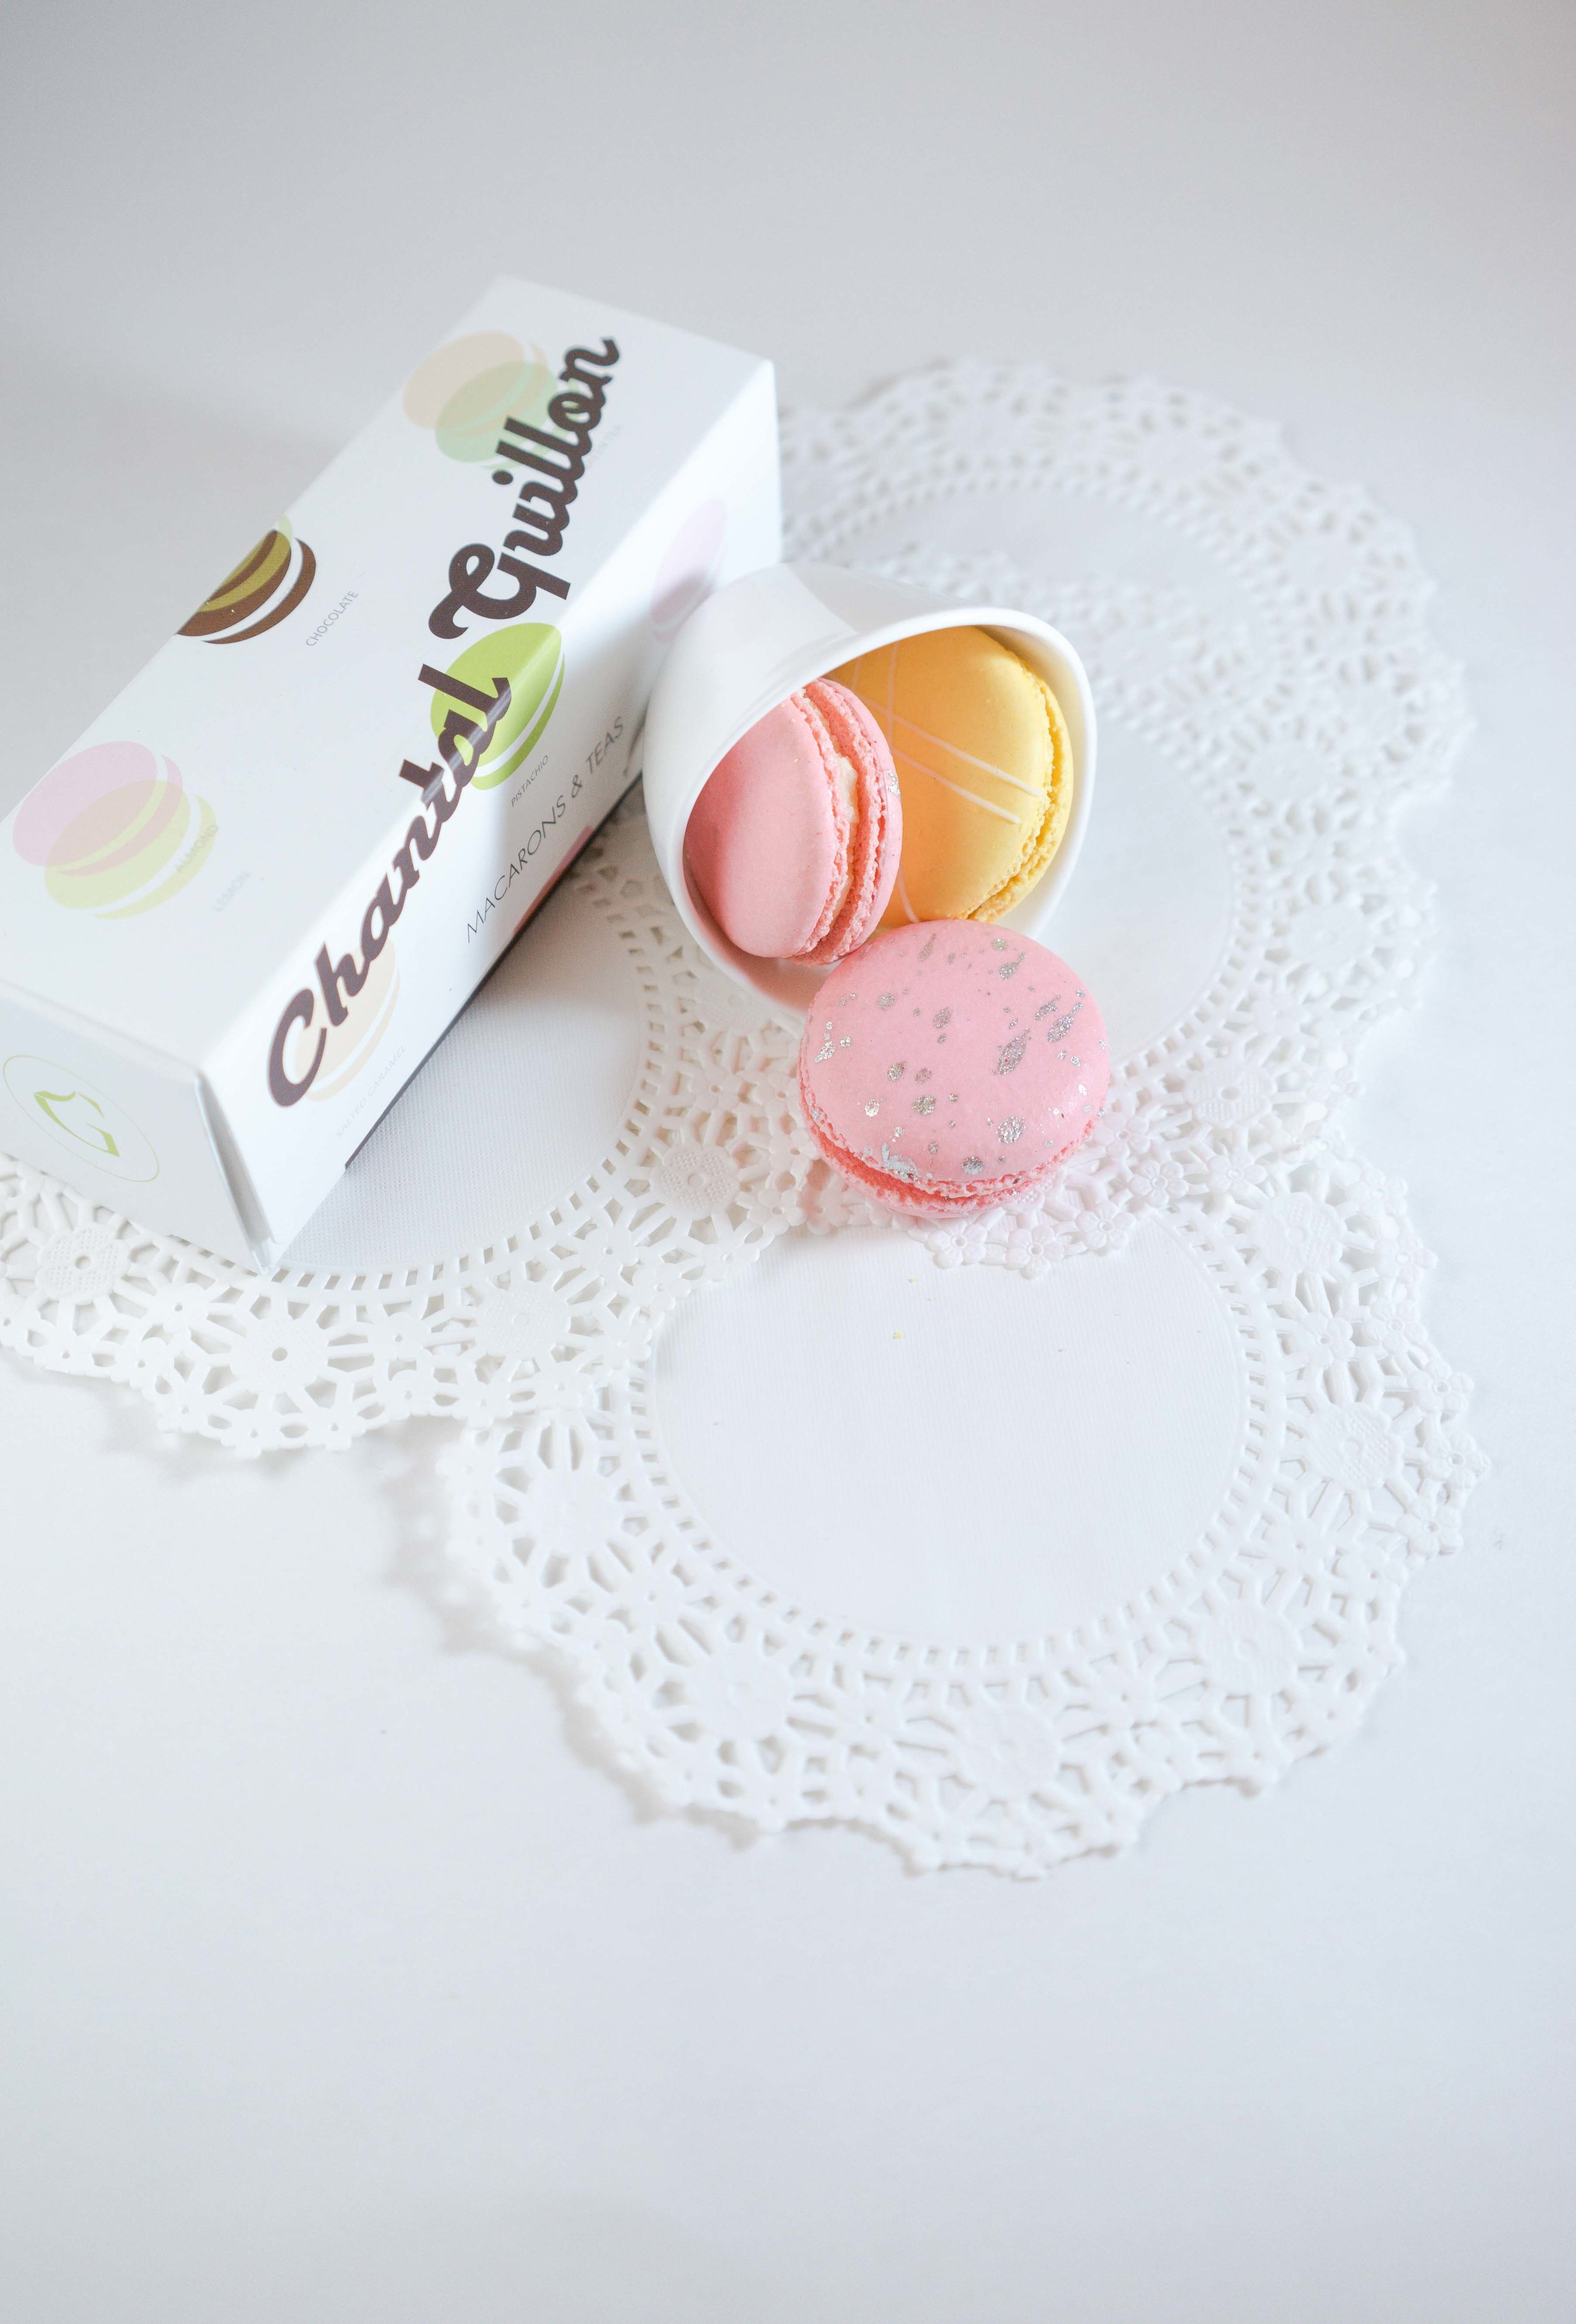 Pineapple with Cherry blossom Macaron flavour |  Photography by A Few Good Clicks